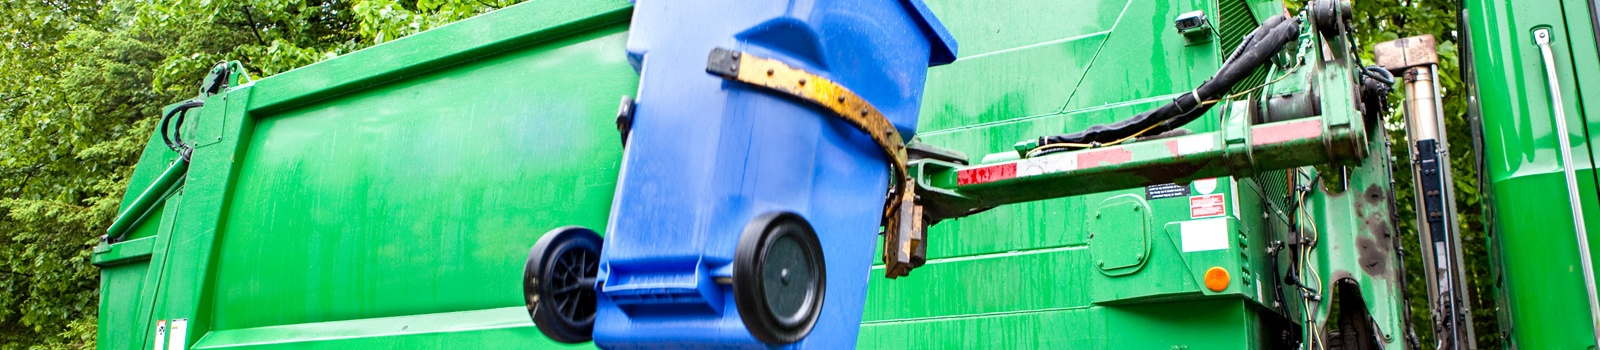 Waste Robot Arm Loading Garbage Truck